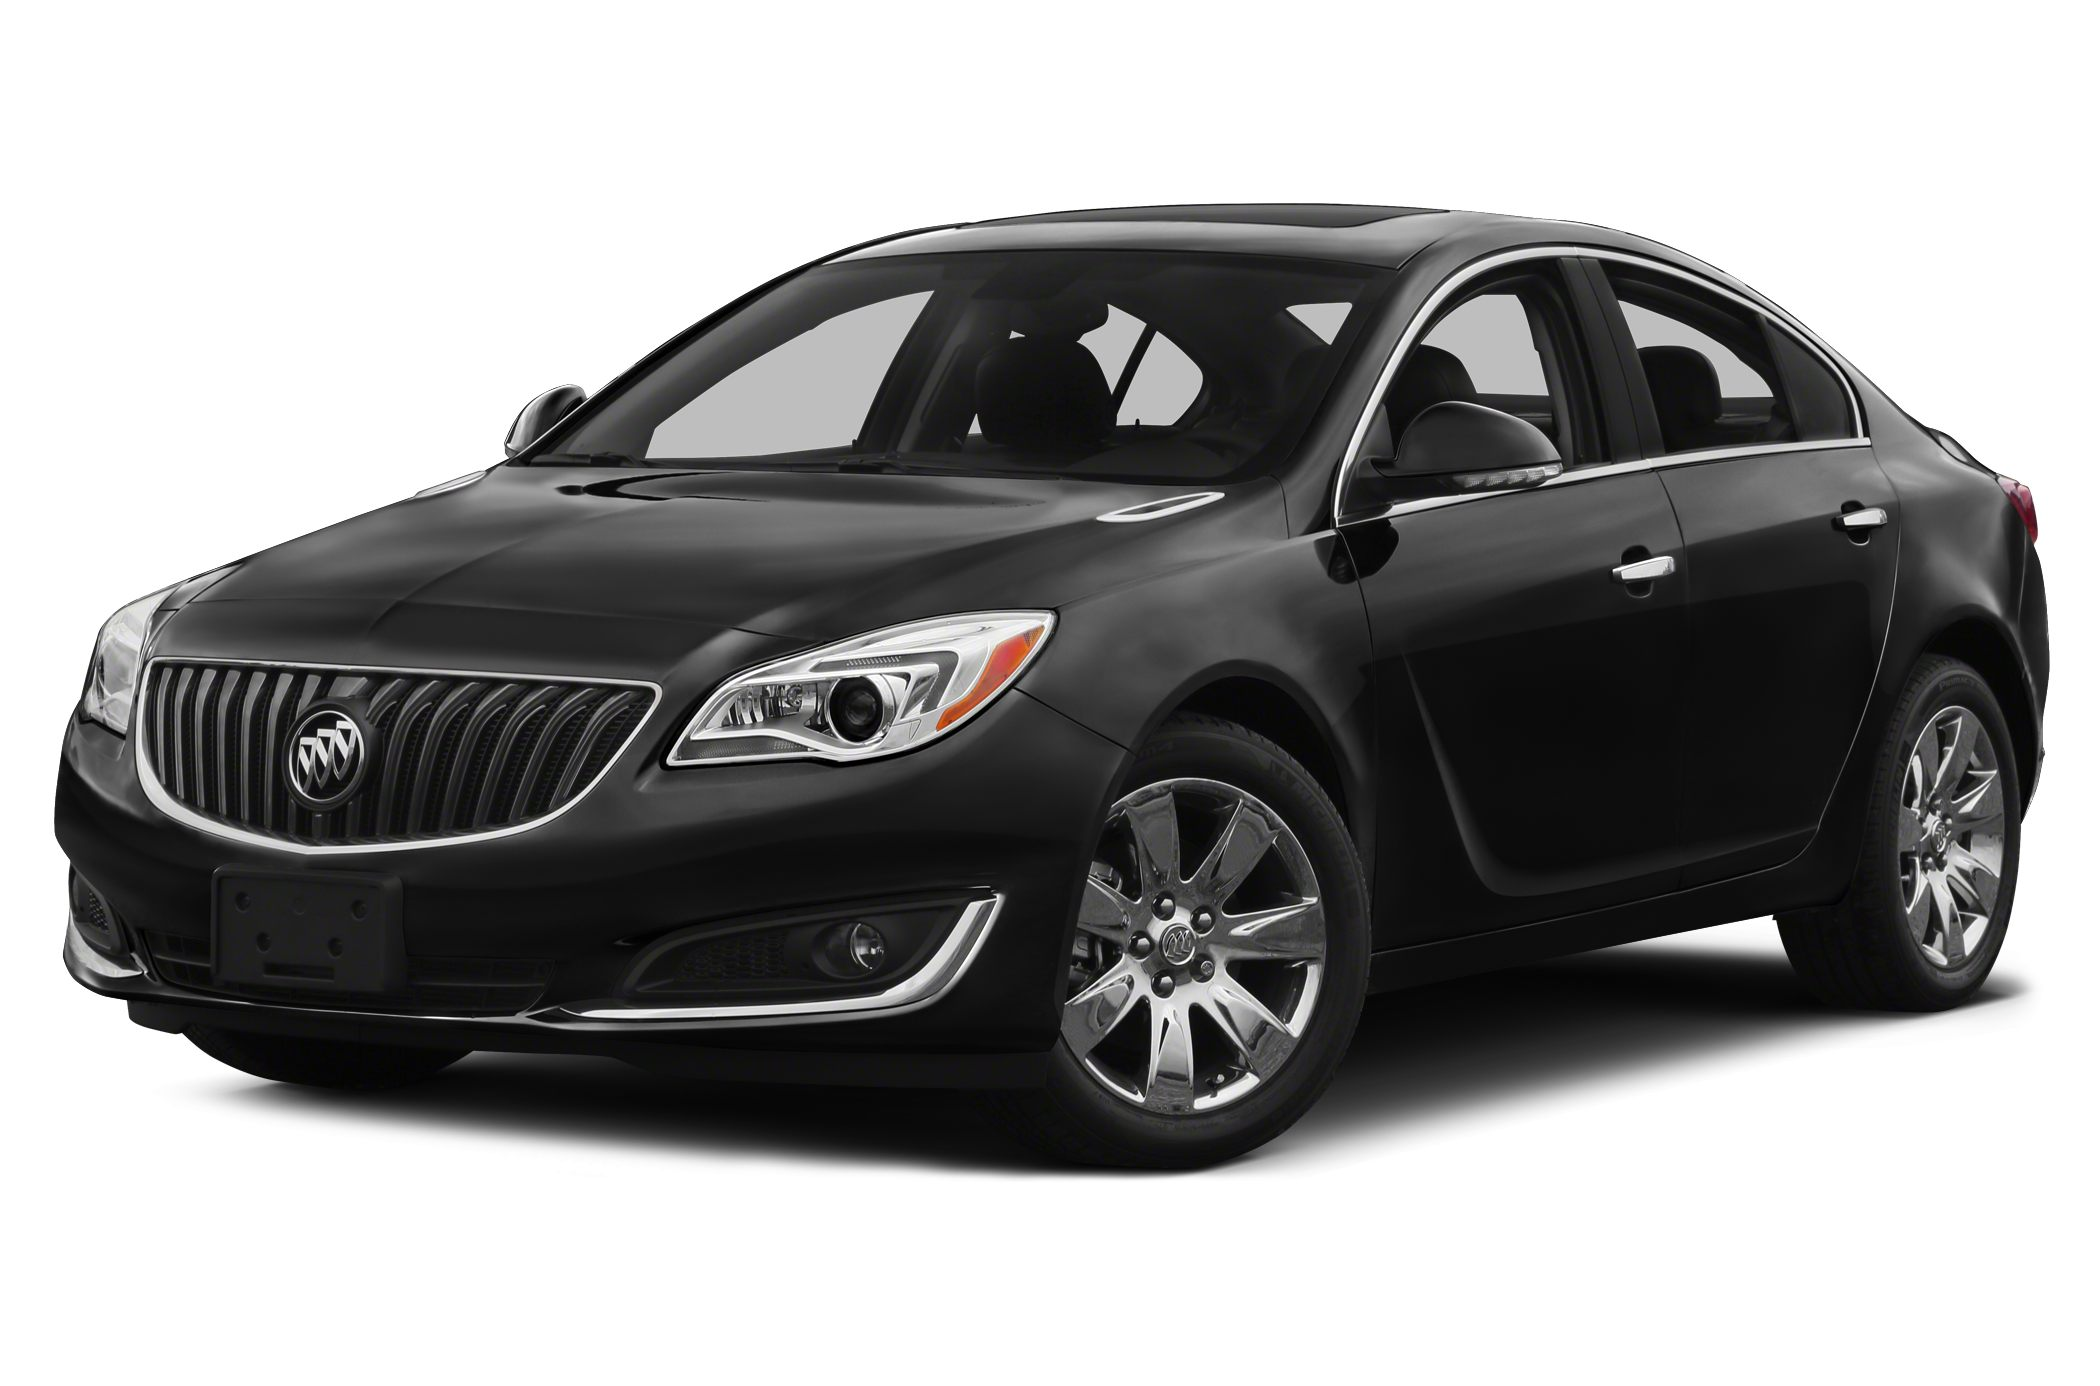 2014 Buick Regal Turbo Premium II Sedan for sale in Henderson for $24,995 with 11,968 miles.